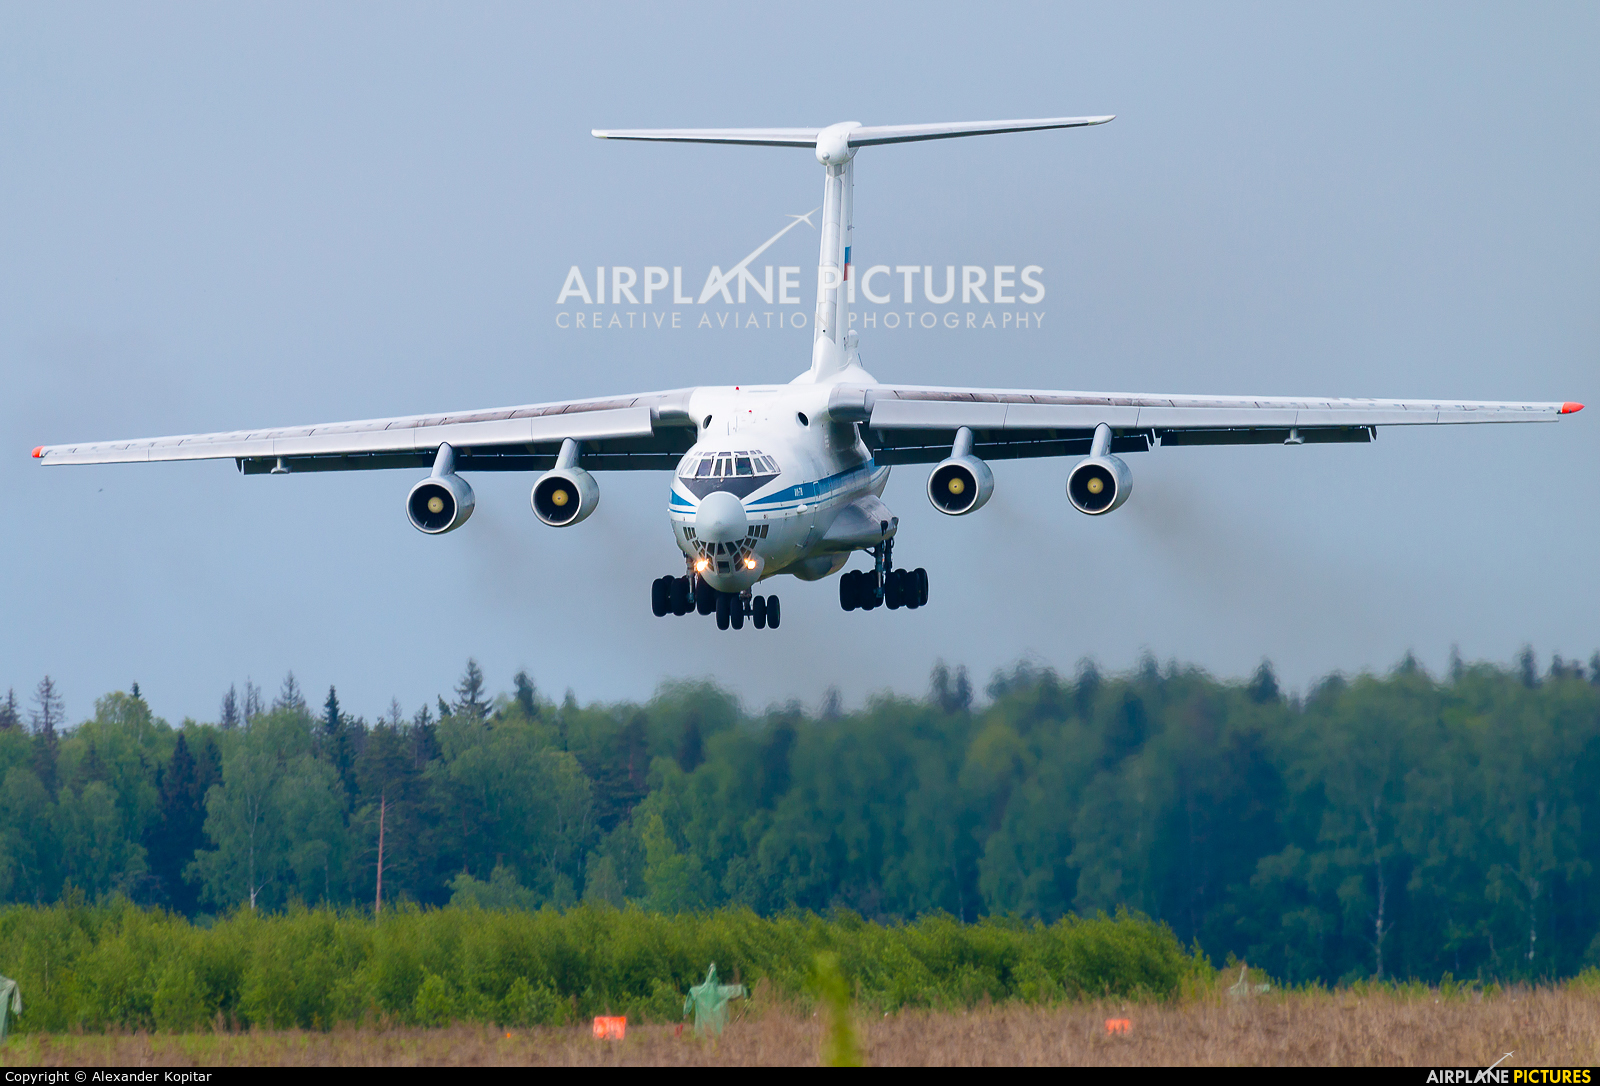 Russia - Air Force RA-78814 aircraft at Undisclosed location